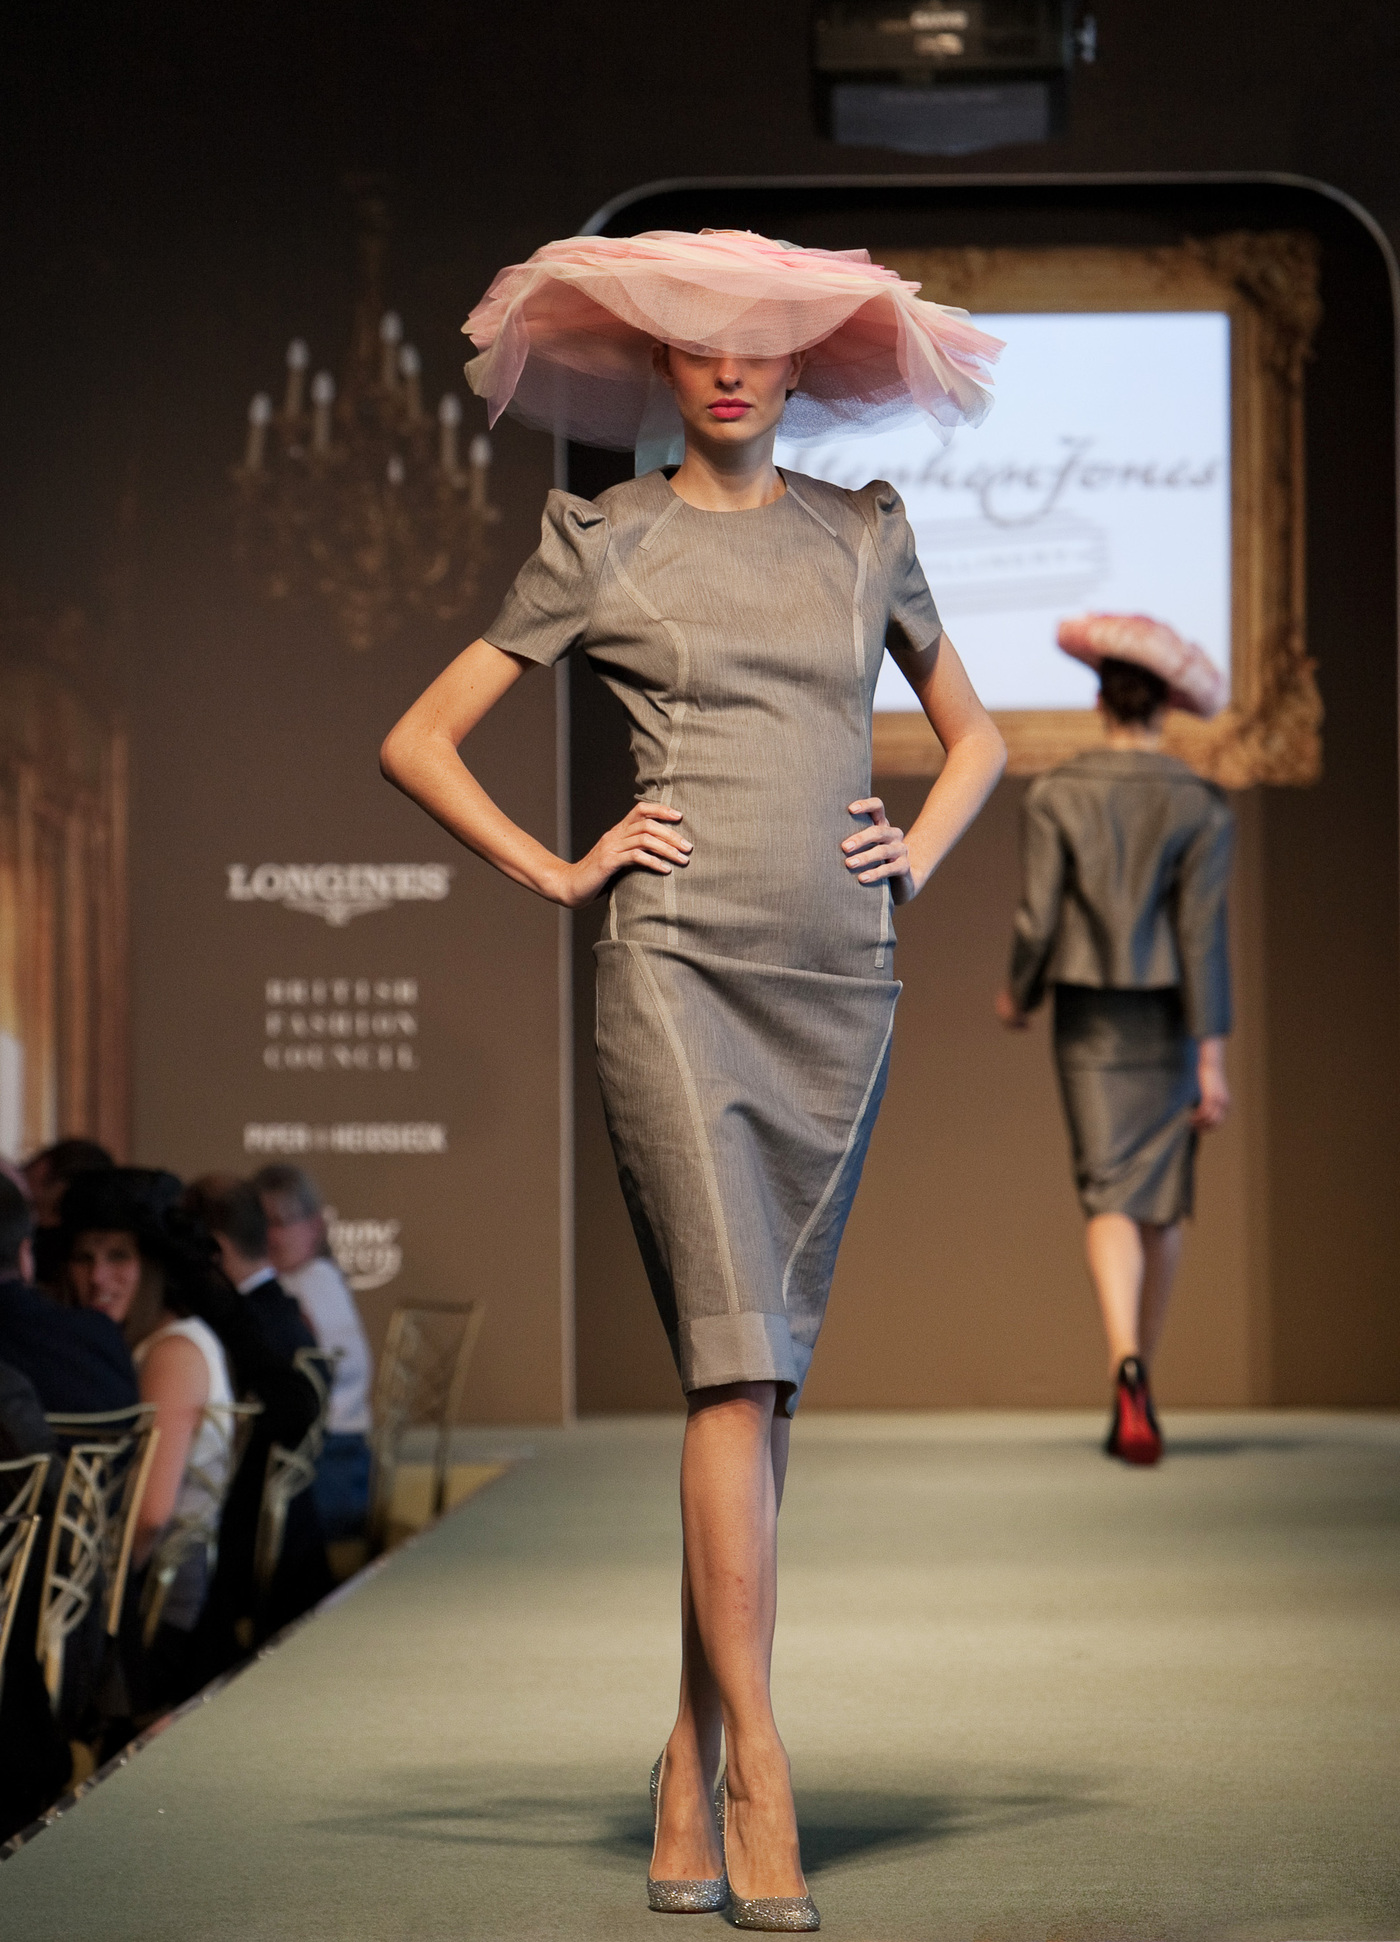 Longines Flat Racing Event: The Asian star Chi Ling Lin discovers the prestigious glamour of Royal Ascot 9